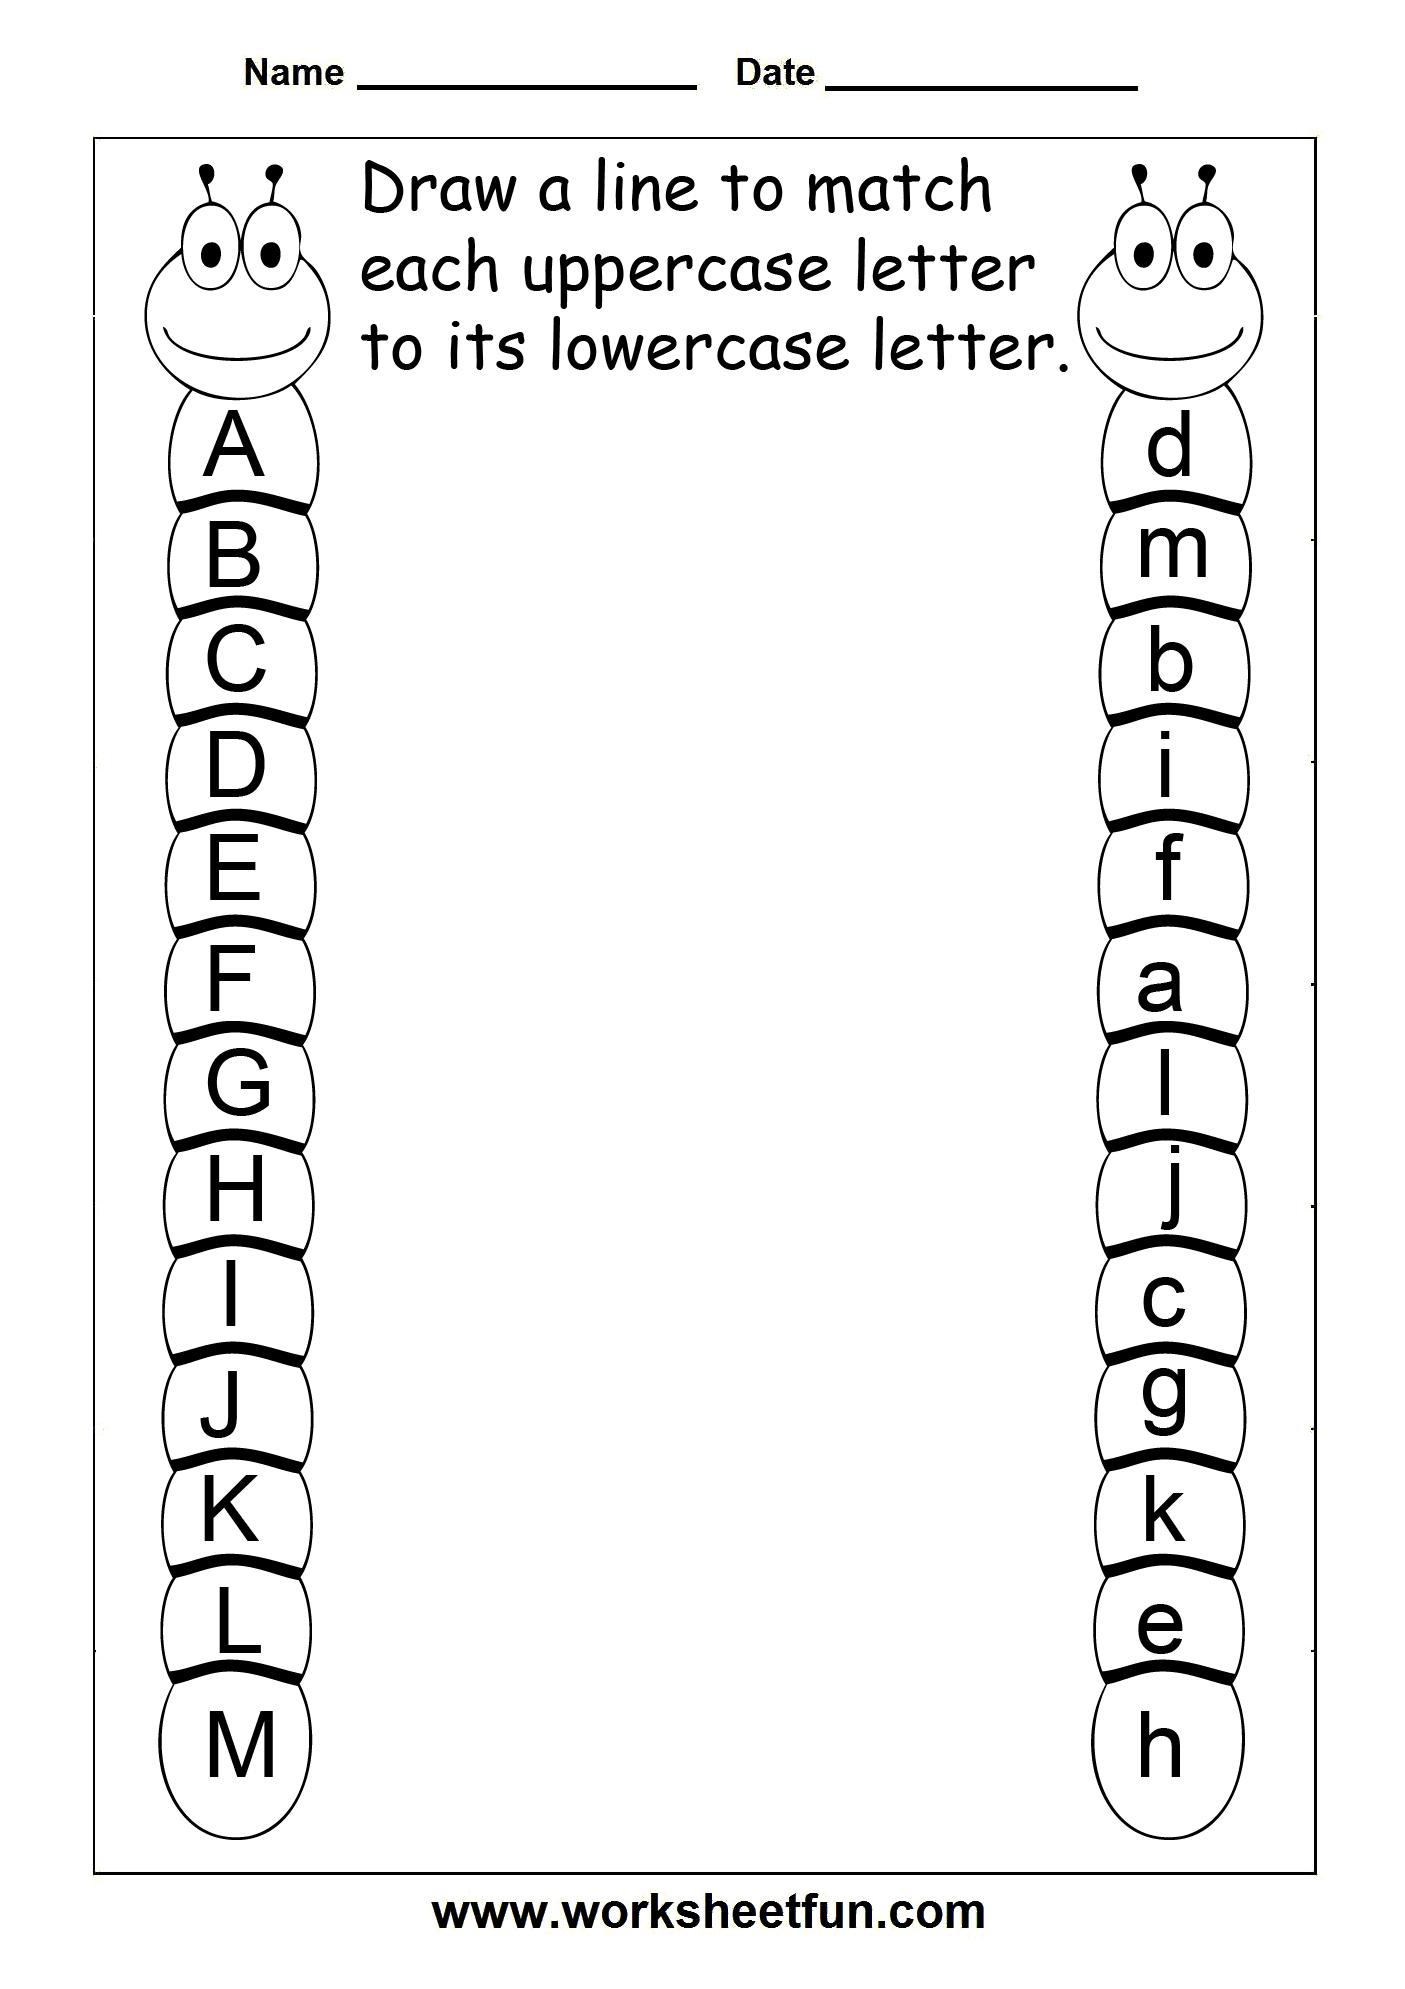 Weirdmailus  Inspiring  Images About Work Worksheet On Pinterest  Hidden Pictures  With Lovable  Images About Work Worksheet On Pinterest  Hidden Pictures Color By Numbers And Puzzles With Astounding Following  Step Directions Worksheet Also Tens And Ones Worksheets Grade  In Addition Beginner Math Worksheets And Nonfiction Text Feature Worksheet As Well As Free Printable Th Grade Science Worksheets Additionally Past Present Future Worksheet From Pinterestcom With Weirdmailus  Lovable  Images About Work Worksheet On Pinterest  Hidden Pictures  With Astounding  Images About Work Worksheet On Pinterest  Hidden Pictures Color By Numbers And Puzzles And Inspiring Following  Step Directions Worksheet Also Tens And Ones Worksheets Grade  In Addition Beginner Math Worksheets From Pinterestcom